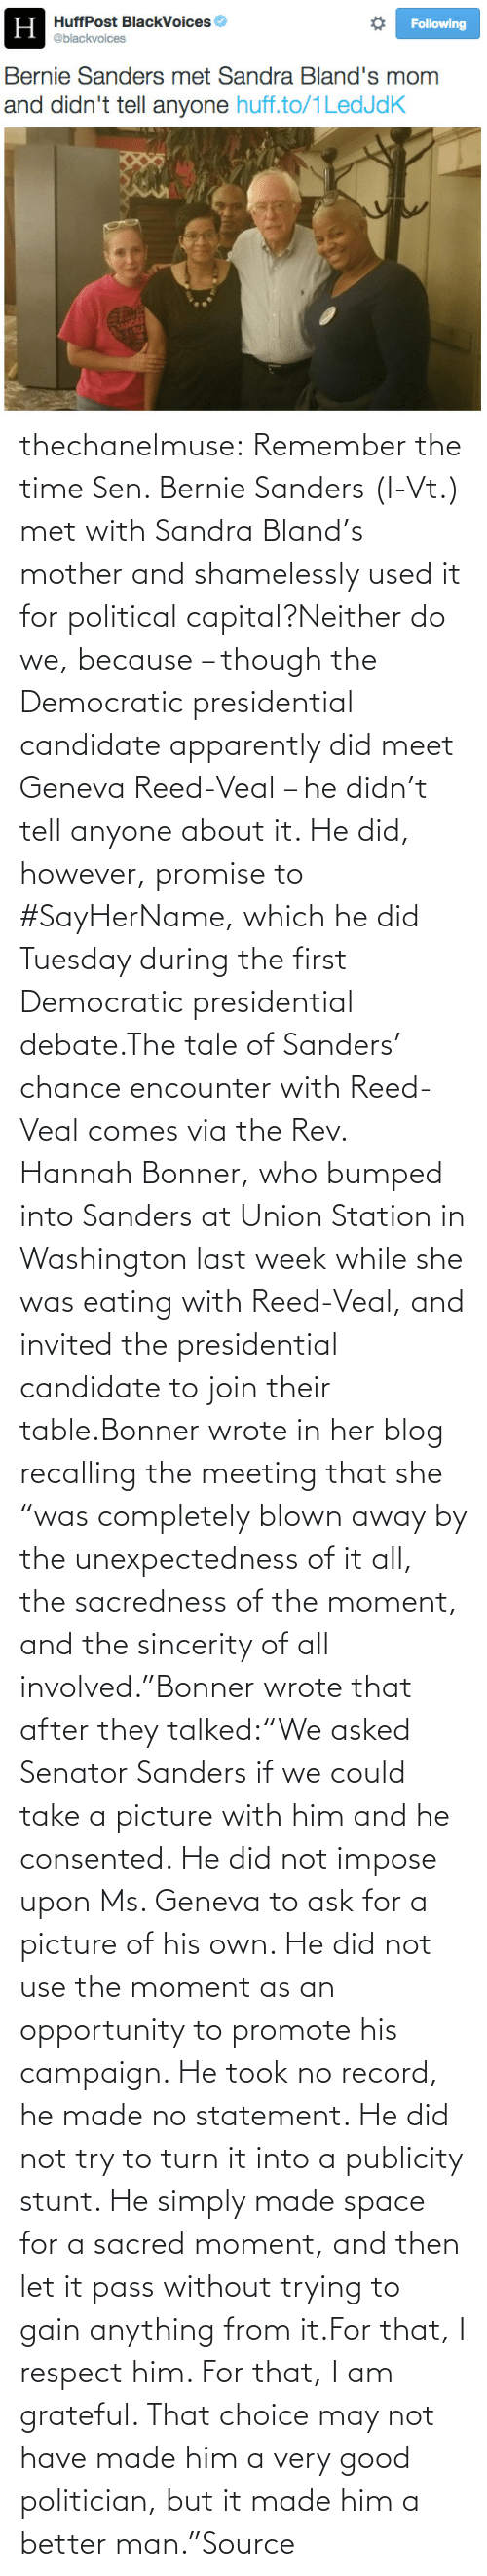 """the rev: H HuffPost BlackVoices  Н  Following  @blackvoices  Bernie Sanders met Sandra Bland's mom  and didn't tell anyone huff.to/1LedJdK  NORA thechanelmuse:  Remember the time Sen. Bernie Sanders (I-Vt.) met with Sandra Bland's mother and shamelessly used it for political capital?Neither do we, because – though the Democratic presidential candidate apparently did meet Geneva Reed-Veal – he didn't tell anyone about it. He did, however, promise to #SayHerName, which he did Tuesday during the first Democratic presidential debate.The tale of Sanders' chance encounter with Reed-Veal comes via the Rev. Hannah Bonner, who bumped into Sanders at Union Station in Washington last week while she was eating with Reed-Veal, and invited the presidential candidate to join their table.Bonner wrote in her blog recalling the meeting that she """"was completely blown away by the unexpectedness of it all, the sacredness of the moment, and the sincerity of all involved.""""Bonner wrote that after they talked:""""We asked Senator Sanders if we could take a picture with him and he consented. He did not impose upon Ms. Geneva to ask for a picture of his own. He did not use the moment as an opportunity to promote his campaign. He took no record, he made no statement. He did not try to turn it into a publicity stunt. He simply made space for a sacred moment, and then let it pass without trying to gain anything from it.For that, I respect him. For that, I am grateful. That choice may not have made him a very good politician, but it made him a better man.""""Source"""